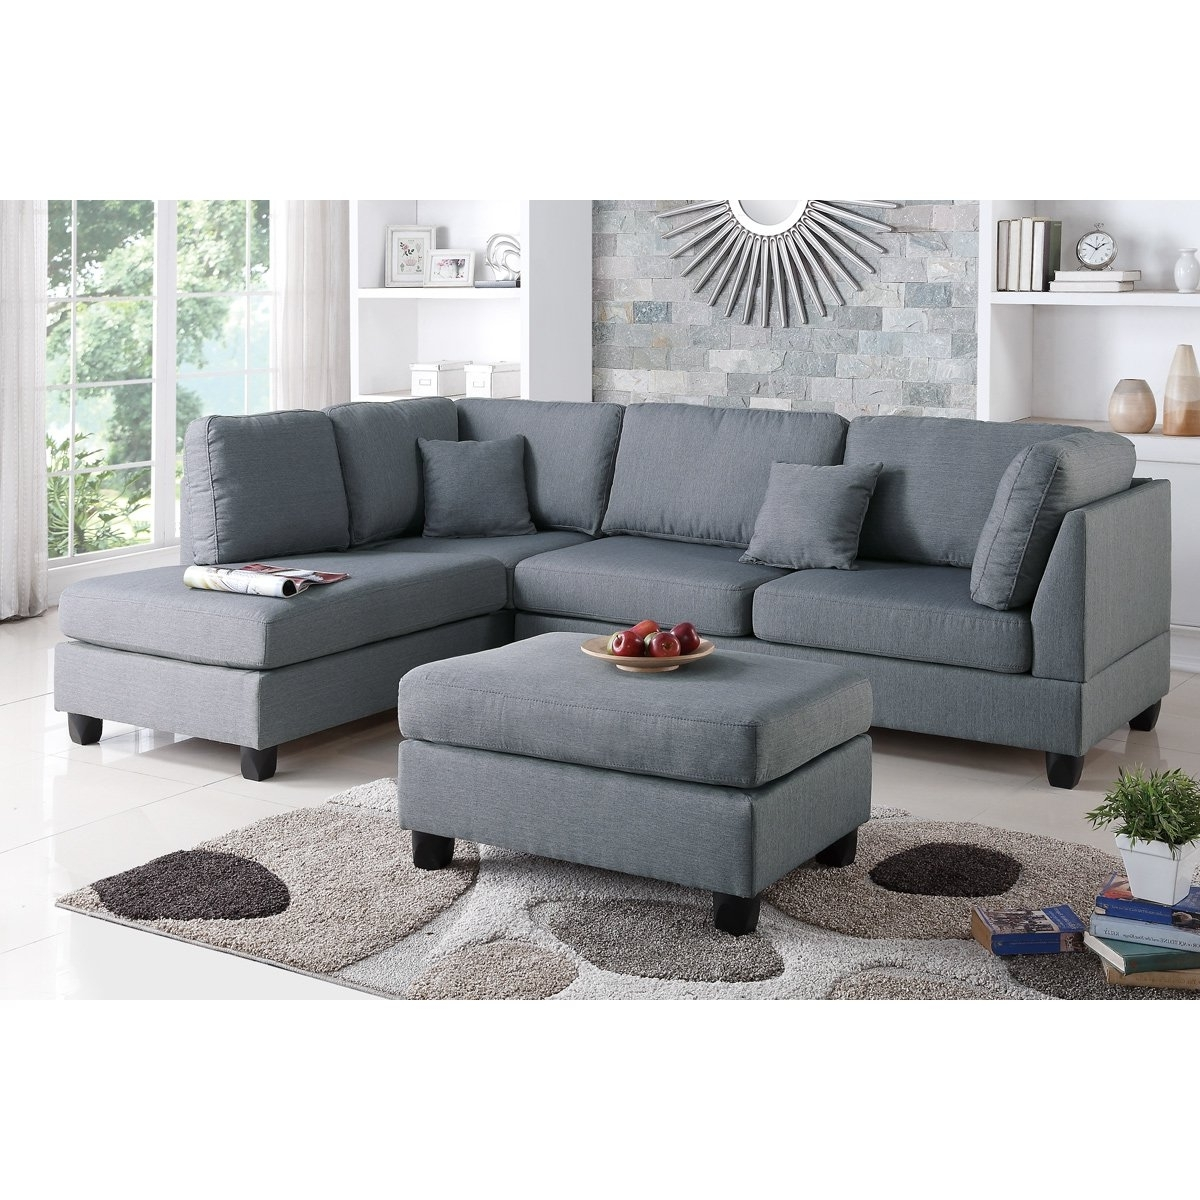 Fashionable Pottery Barn Chaises Within Furniture: Pottery Barn Buchanan Sectional (View 9 of 15)